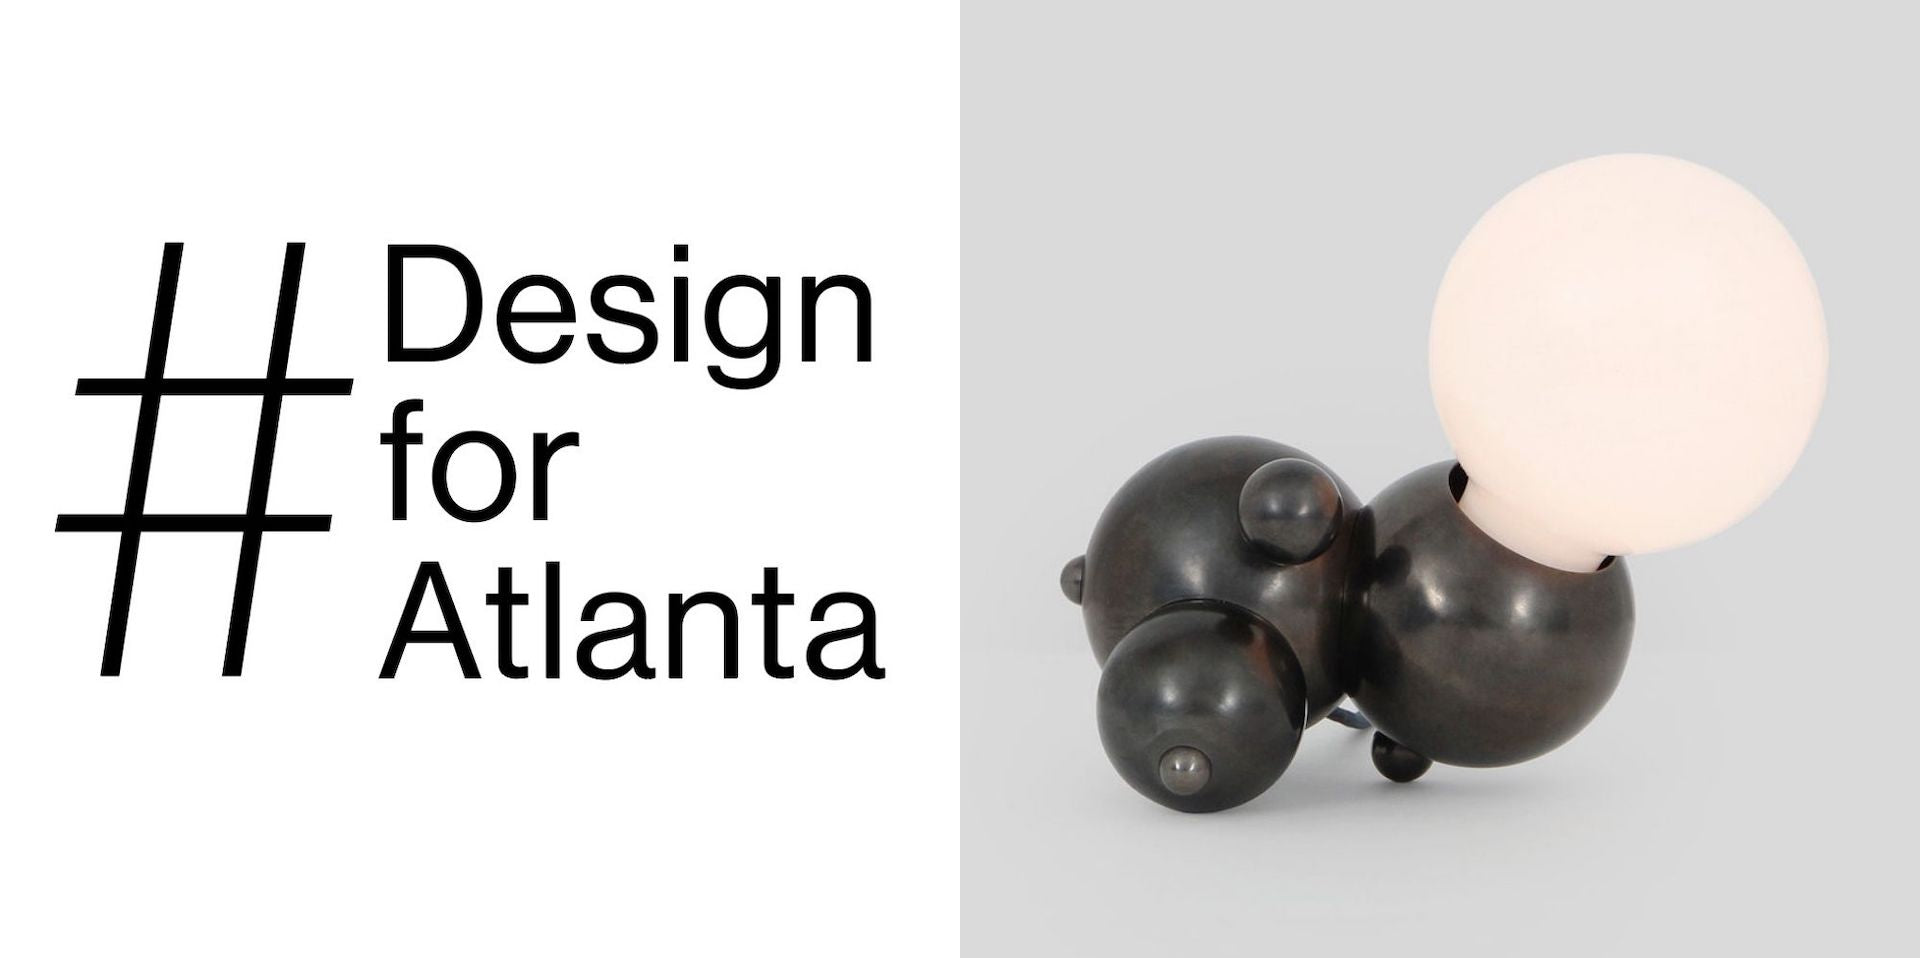 Image from the #DesignForATL social media campaign alongside one of the donated works, Bronze Bubbly Lamp by Rosie Li. Photos courtesy #DesignForATL